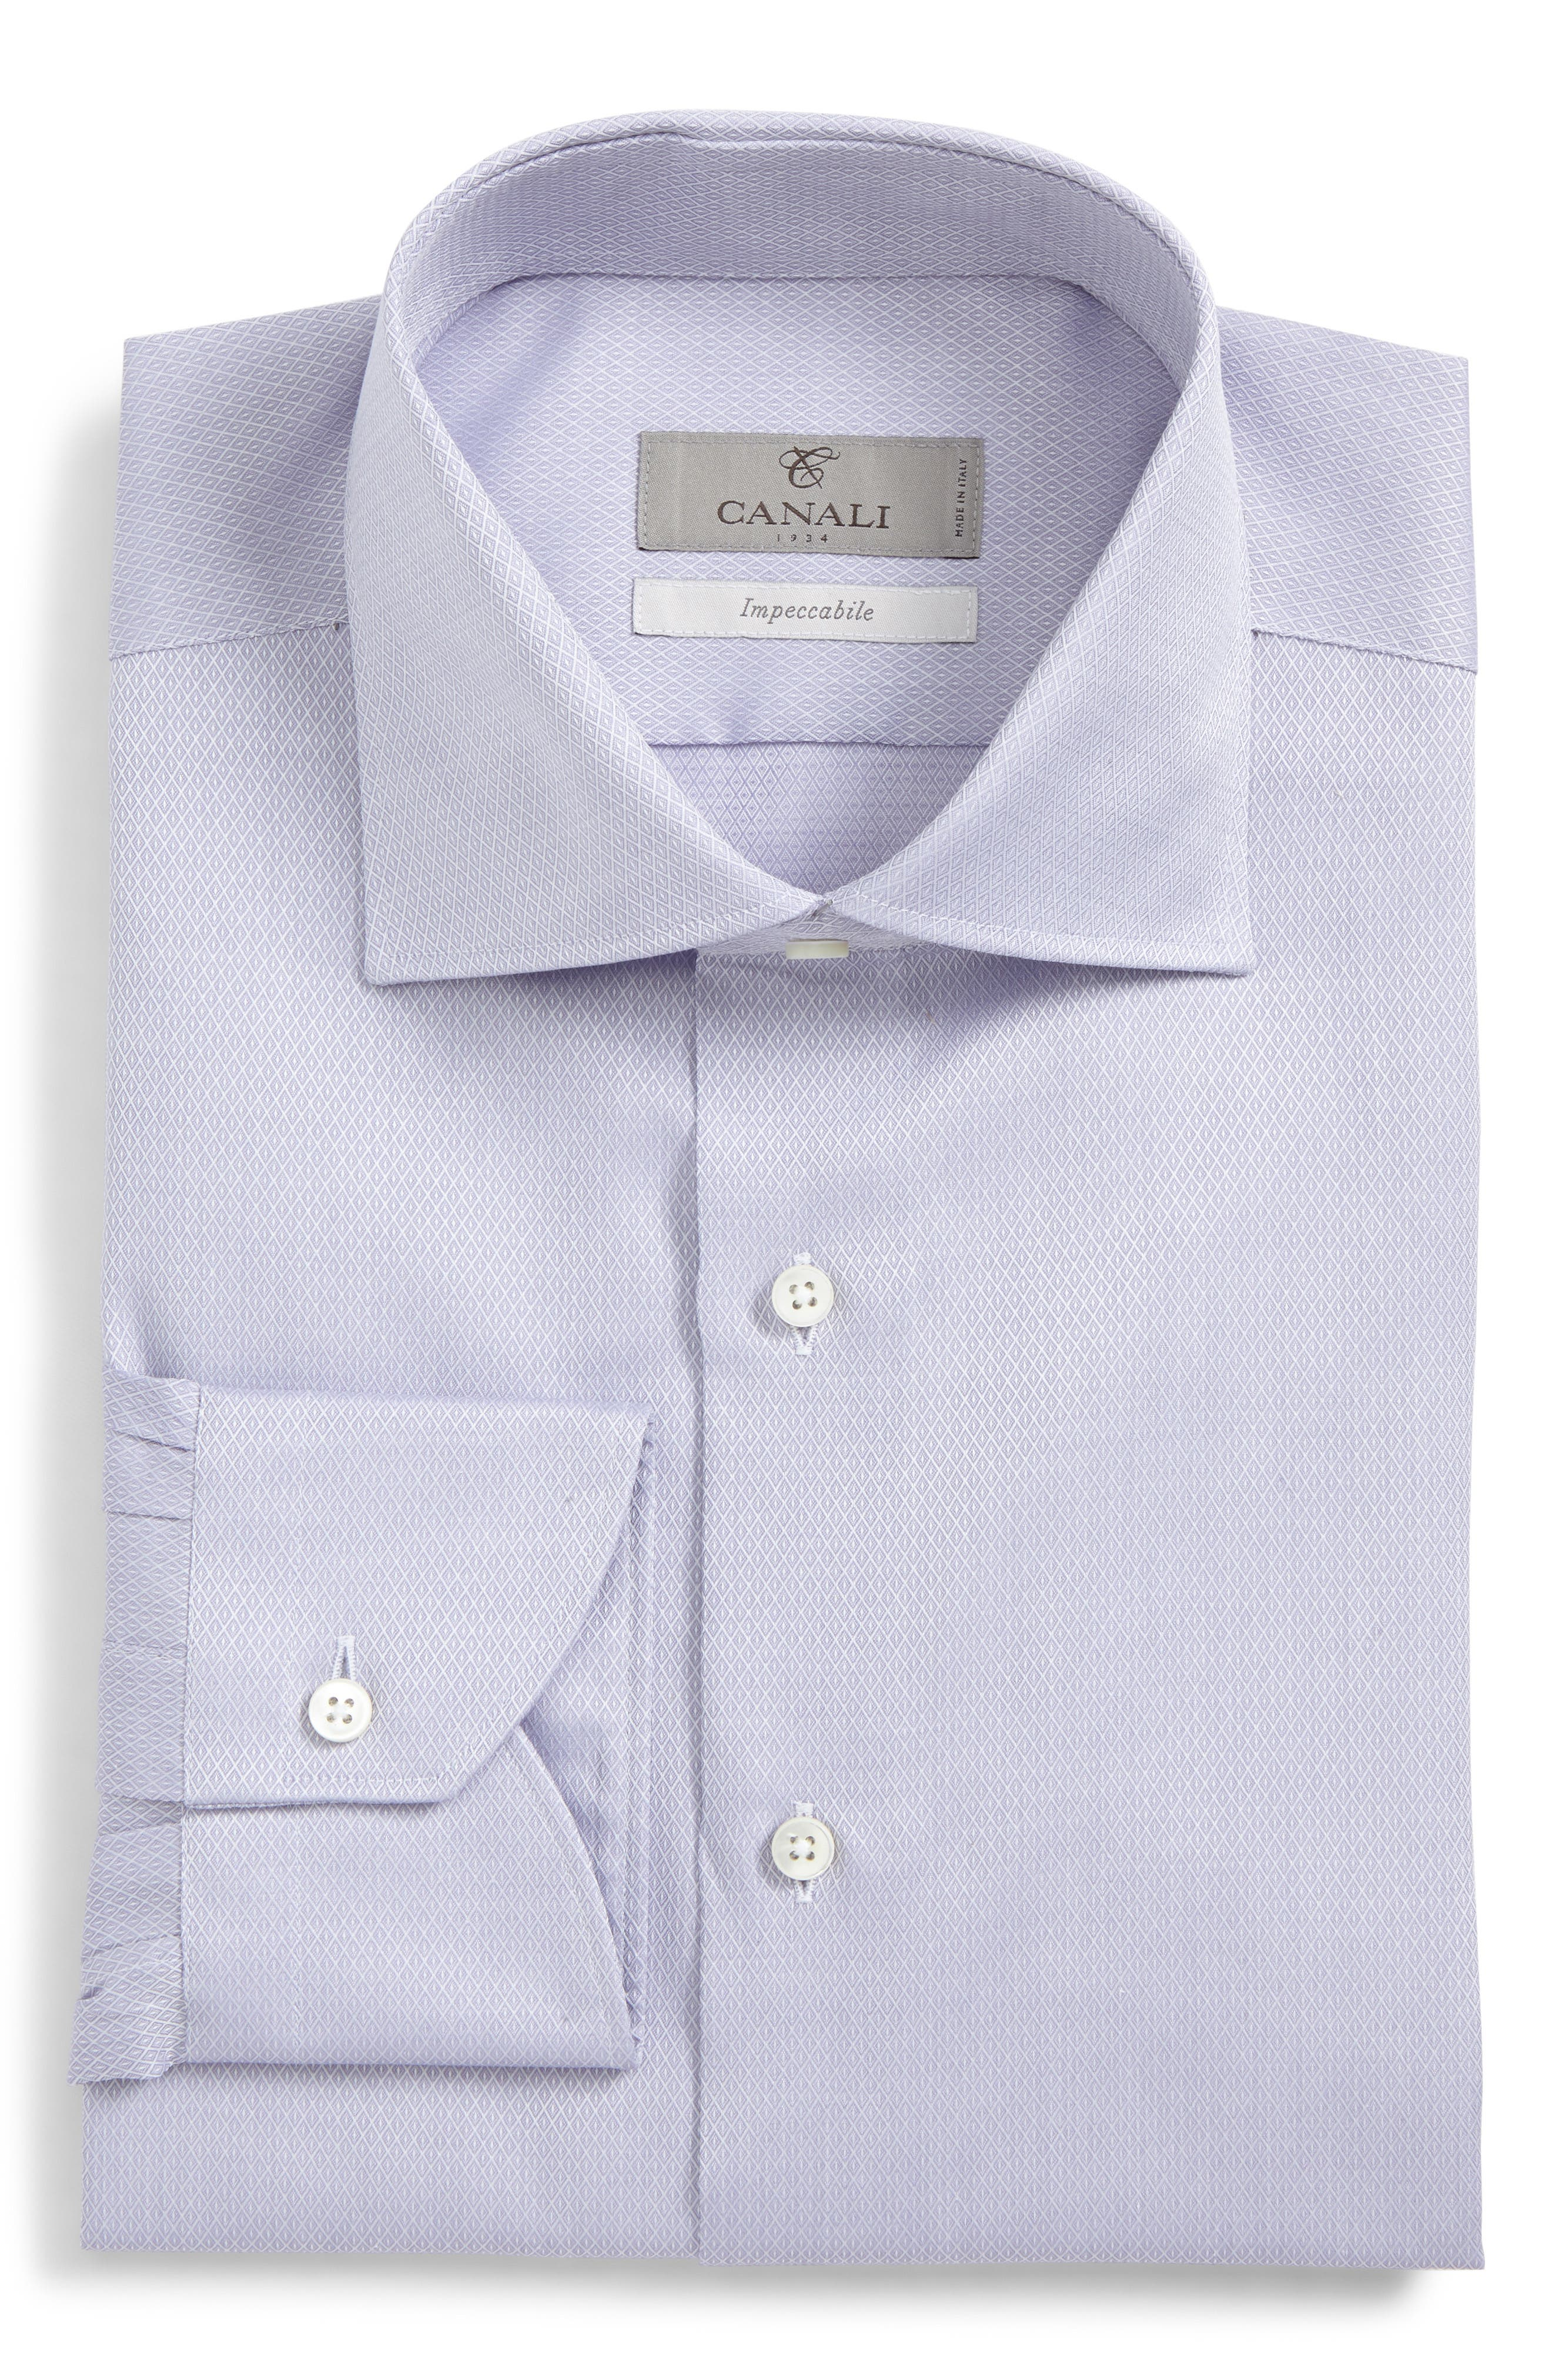 Regular Fit Geometric Dress Shirt,                             Main thumbnail 1, color,                             530